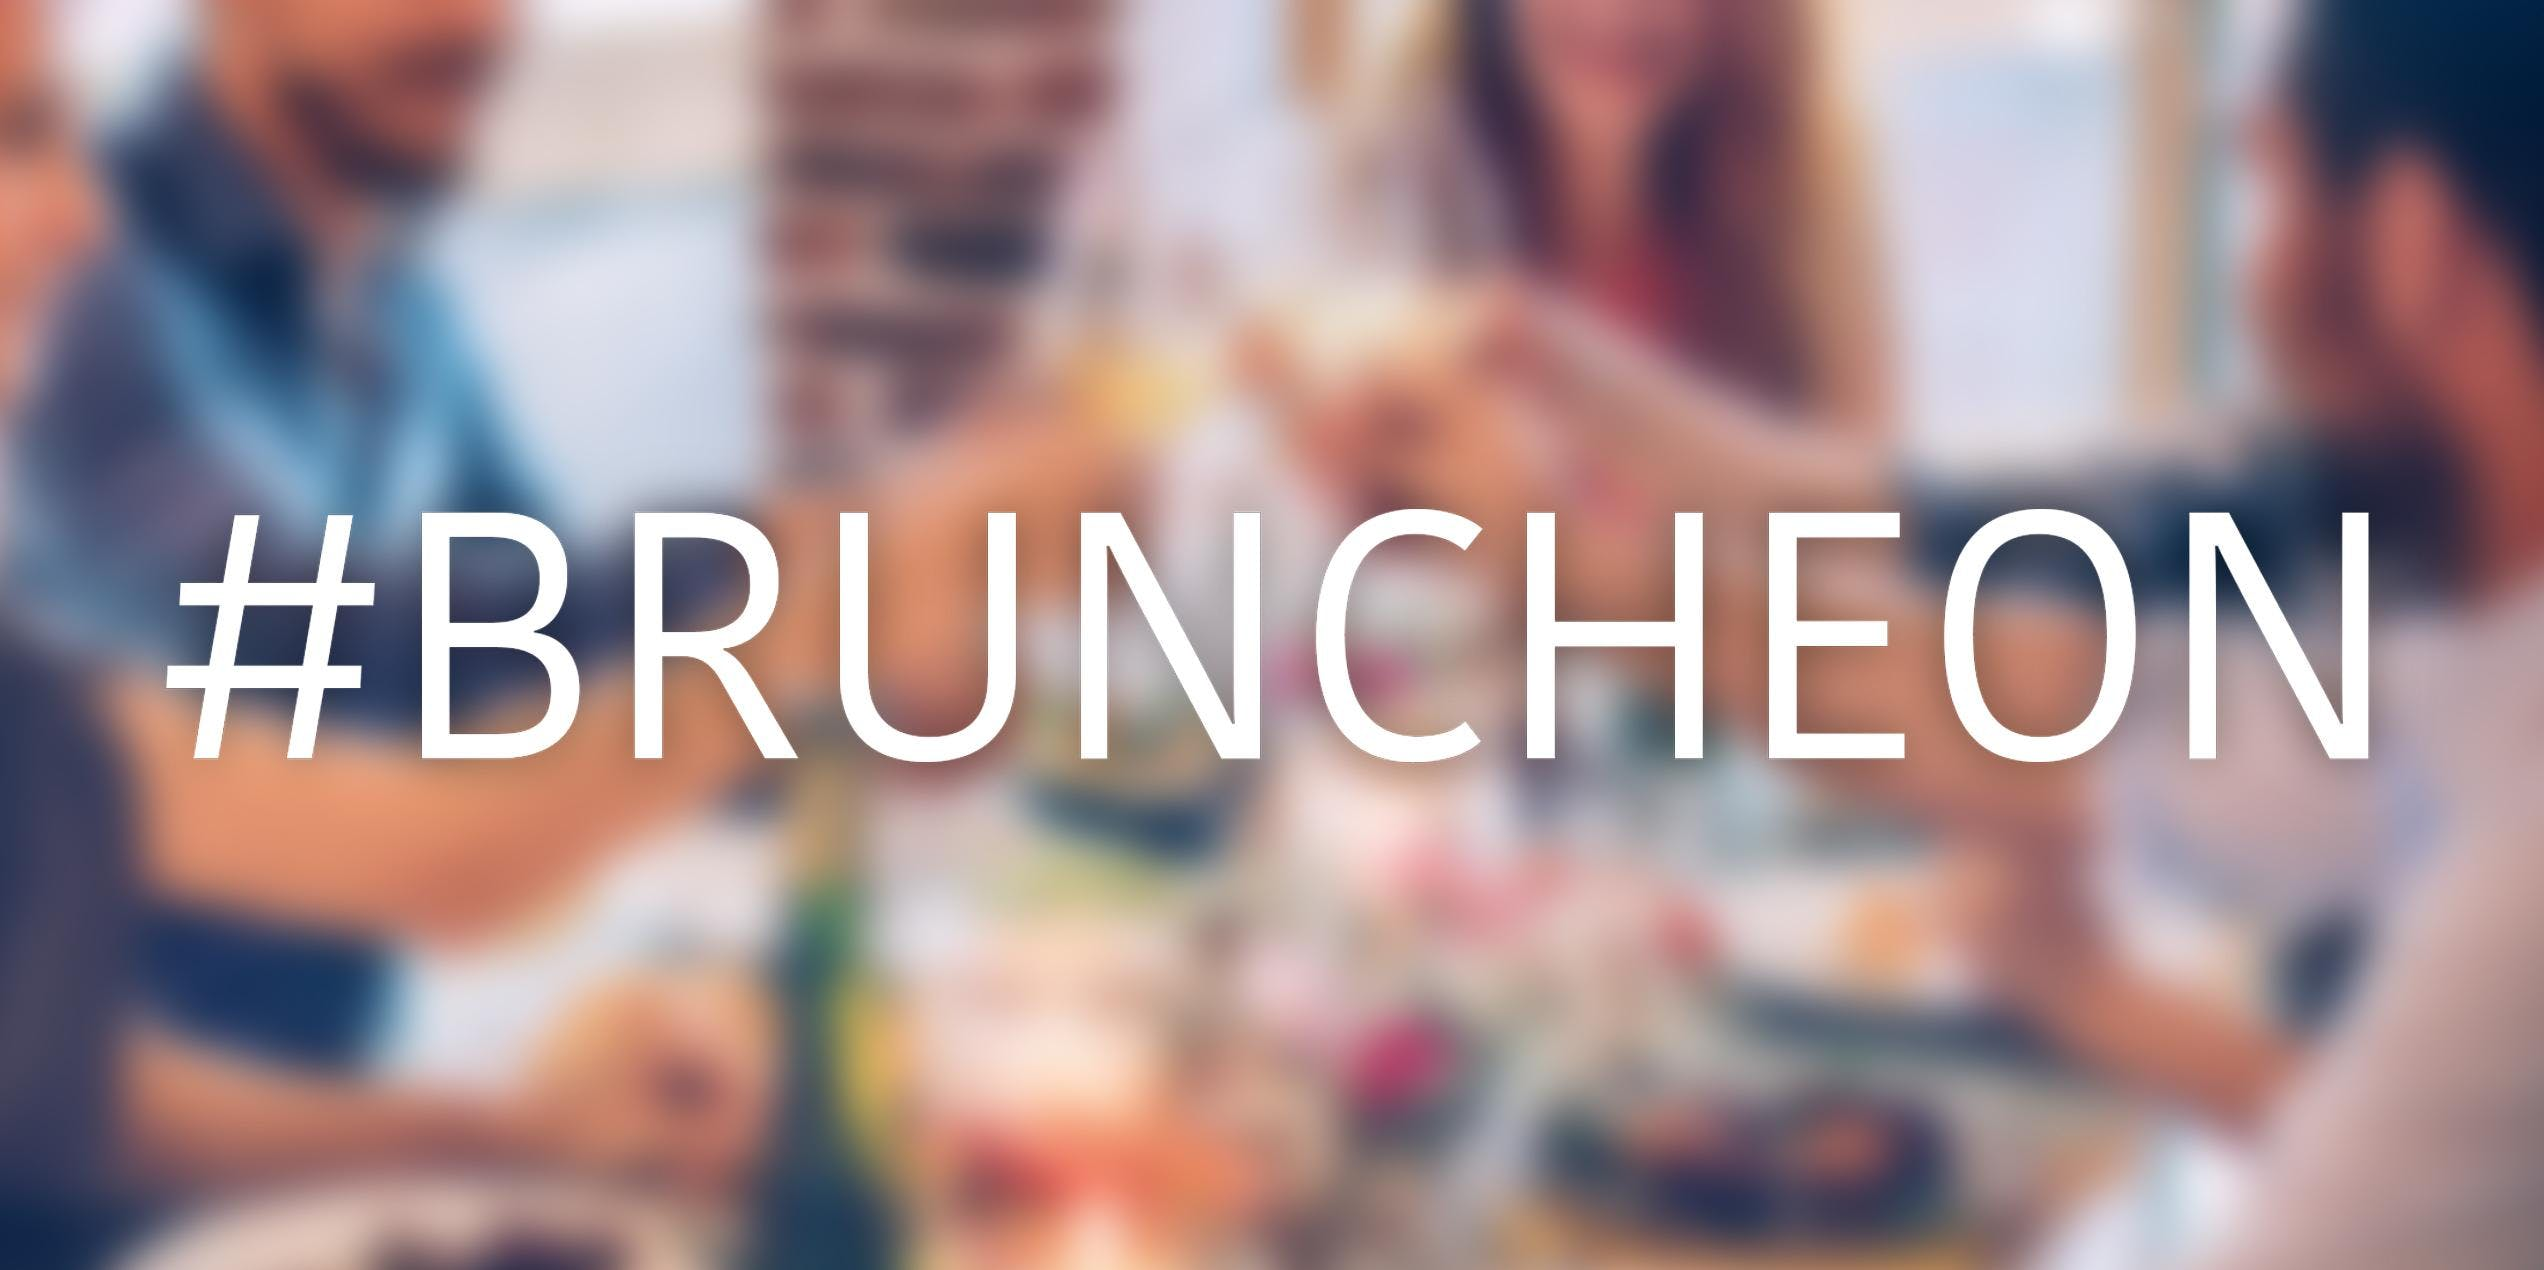 Lex Gaines's August #BRUNCHEON